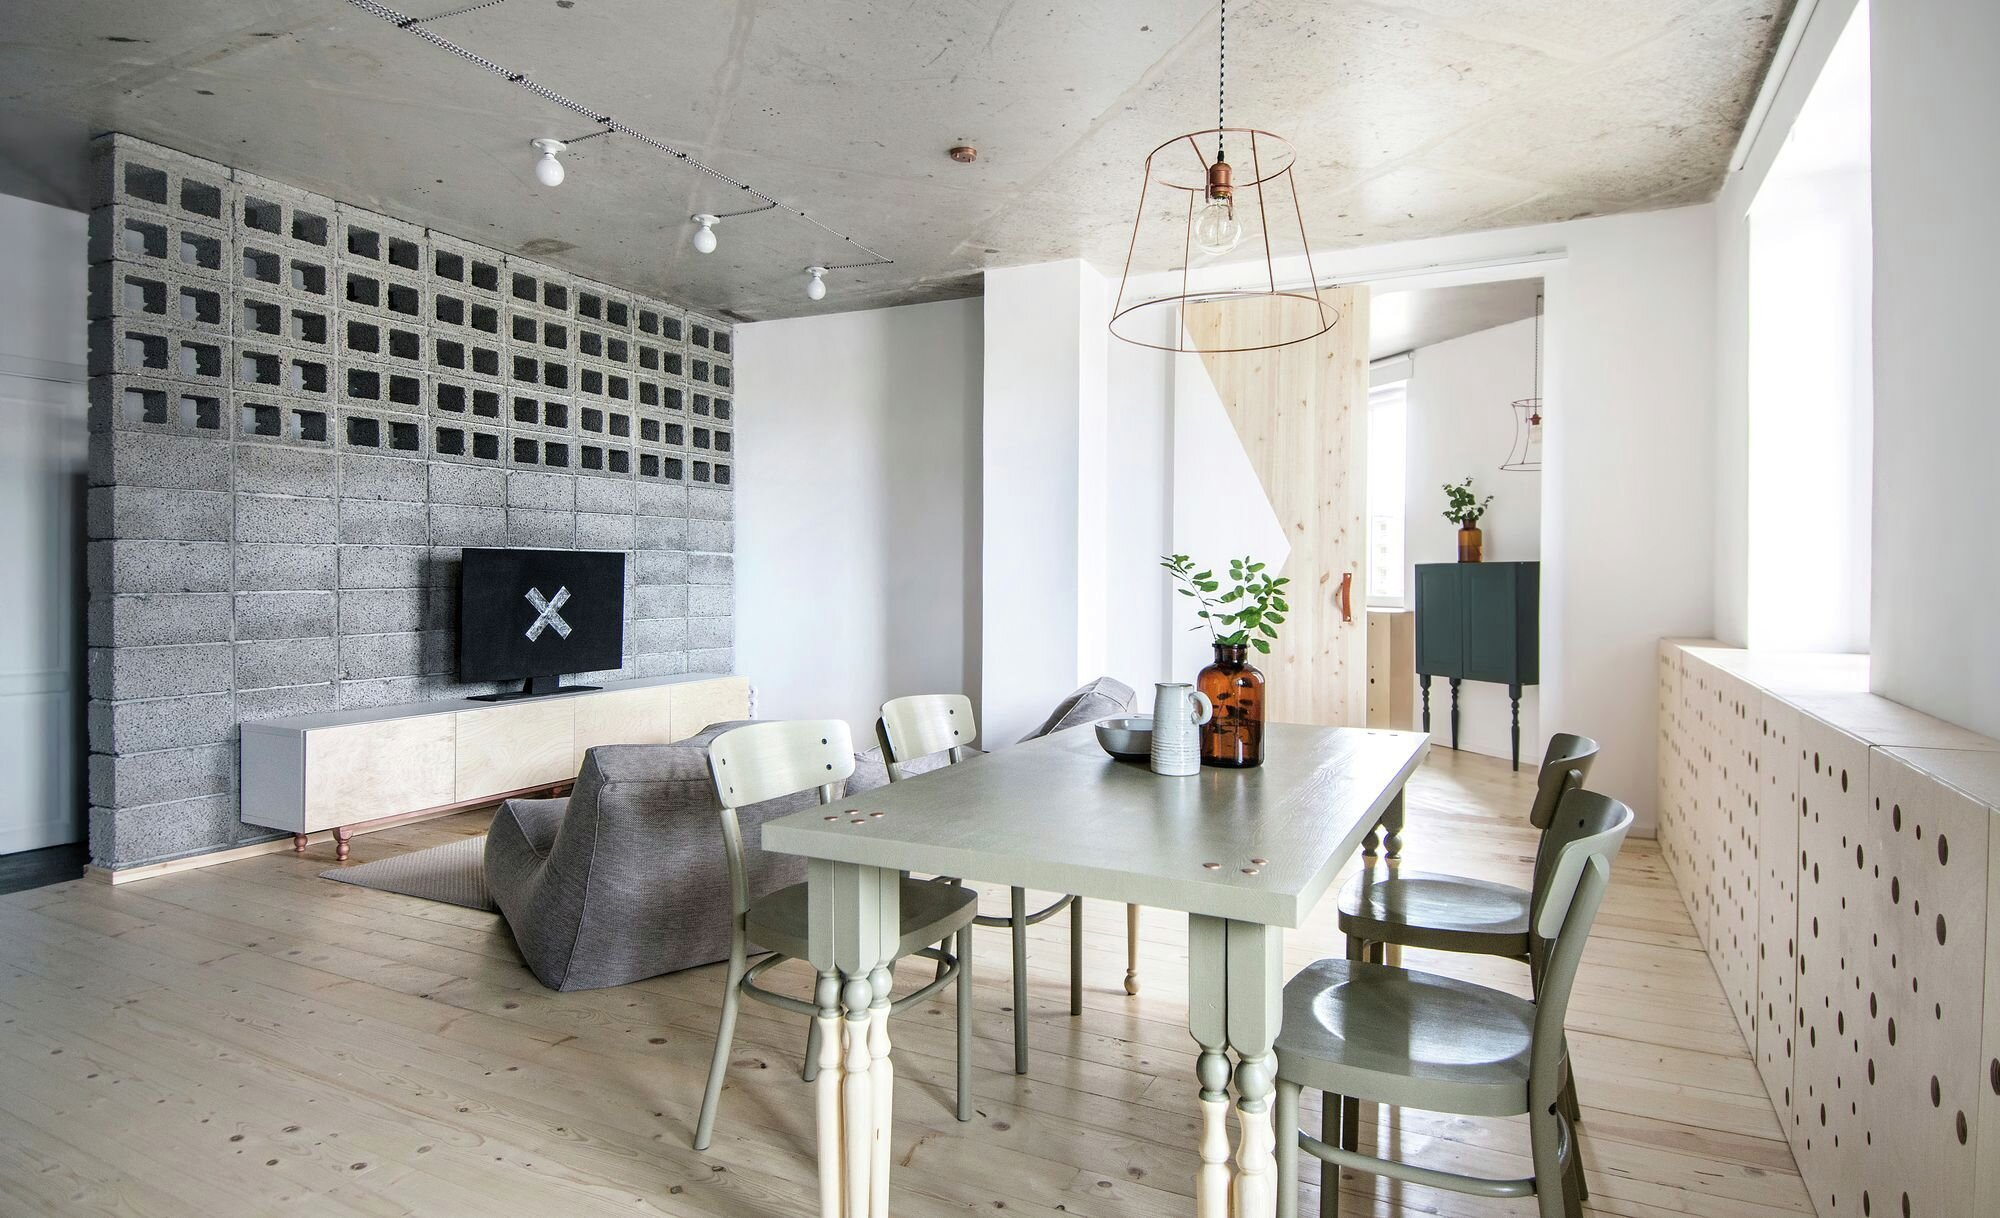 Small Apartment - Interior AK - INT2architecture - Russua - Living and Dining Areas - Humble Homes